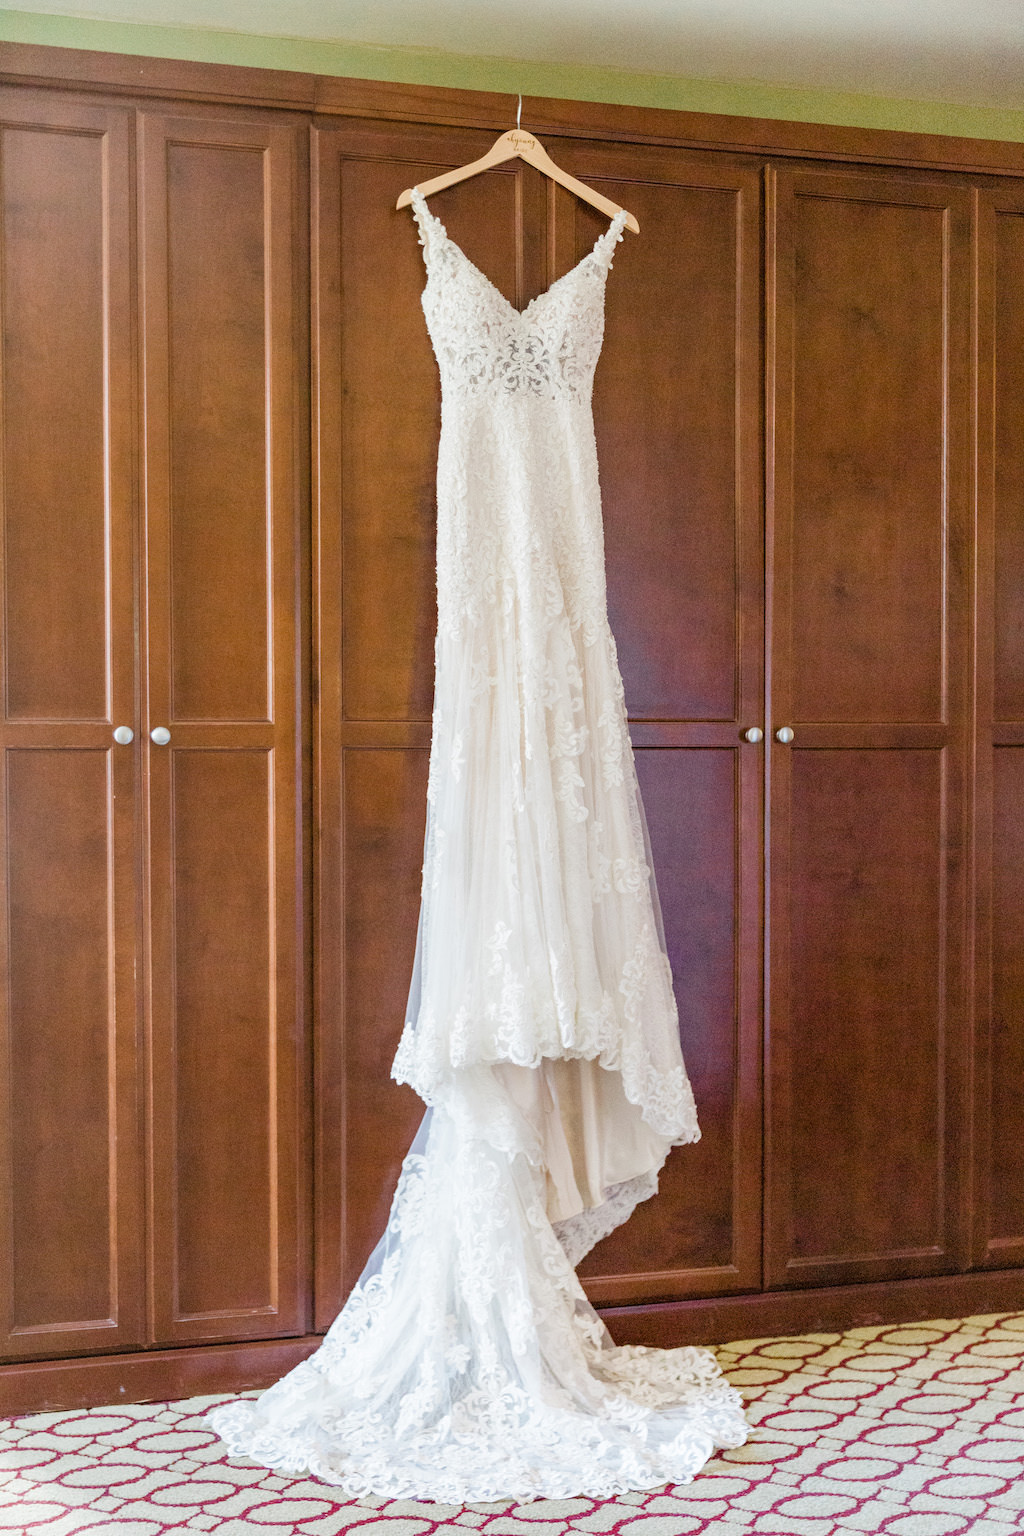 Boho Inspired Fitted Martina Liana Wedding Dress, White Lace Detailing with Straps and V Neckline